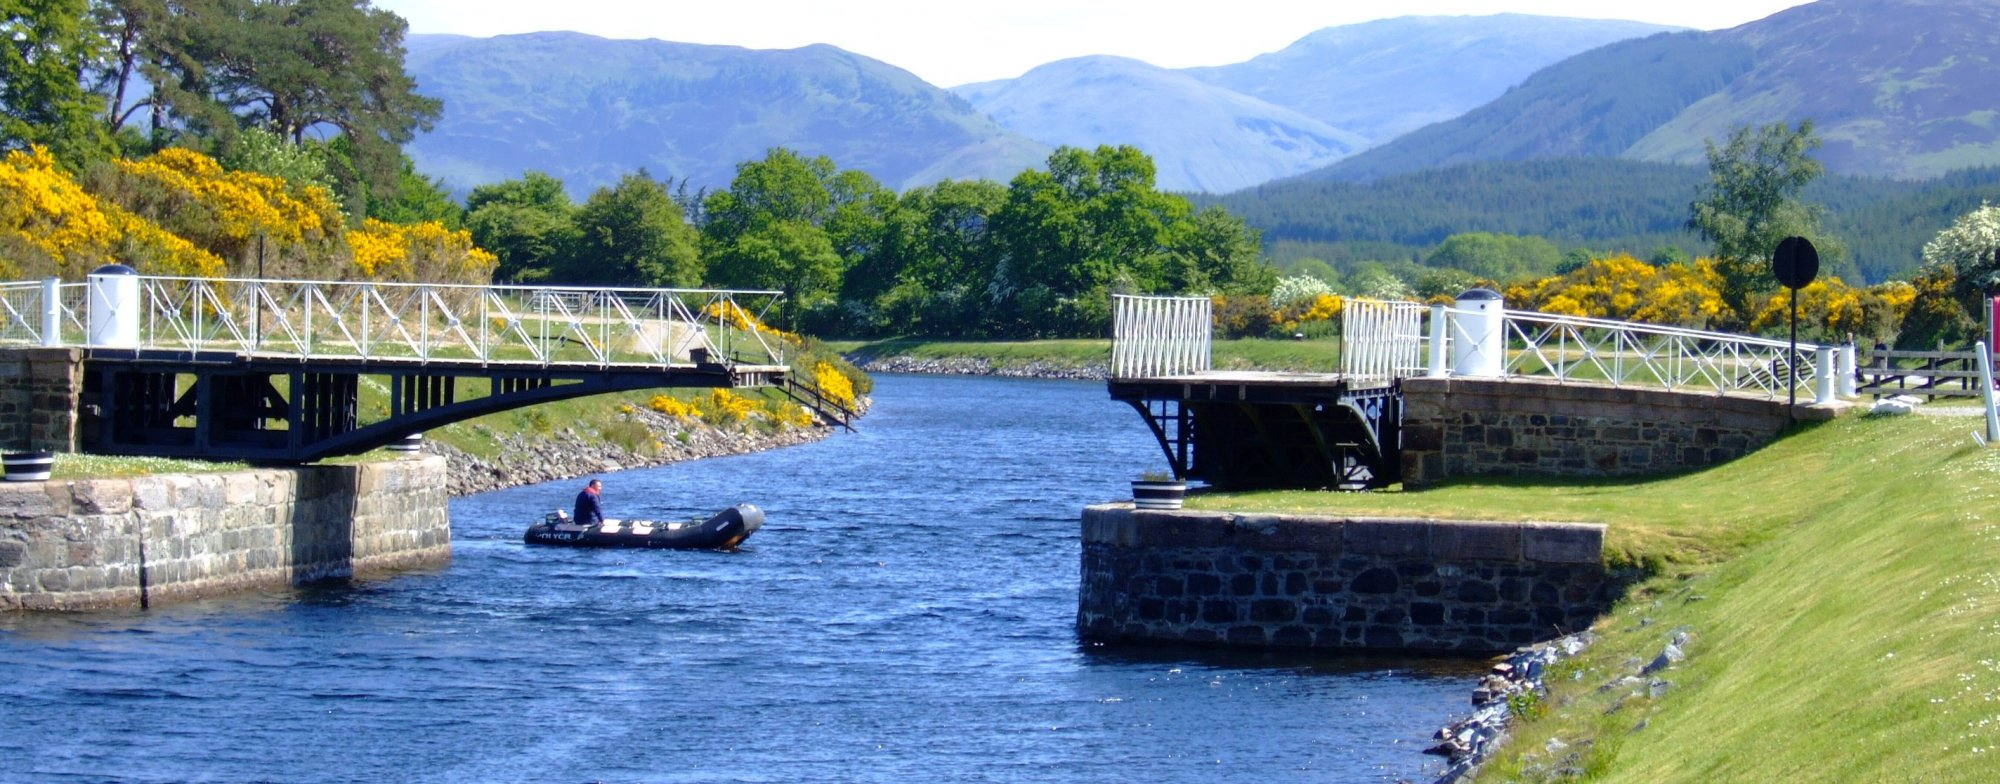 The bridge keeper at Moy Bridge, closes the span after letting a boat pass through